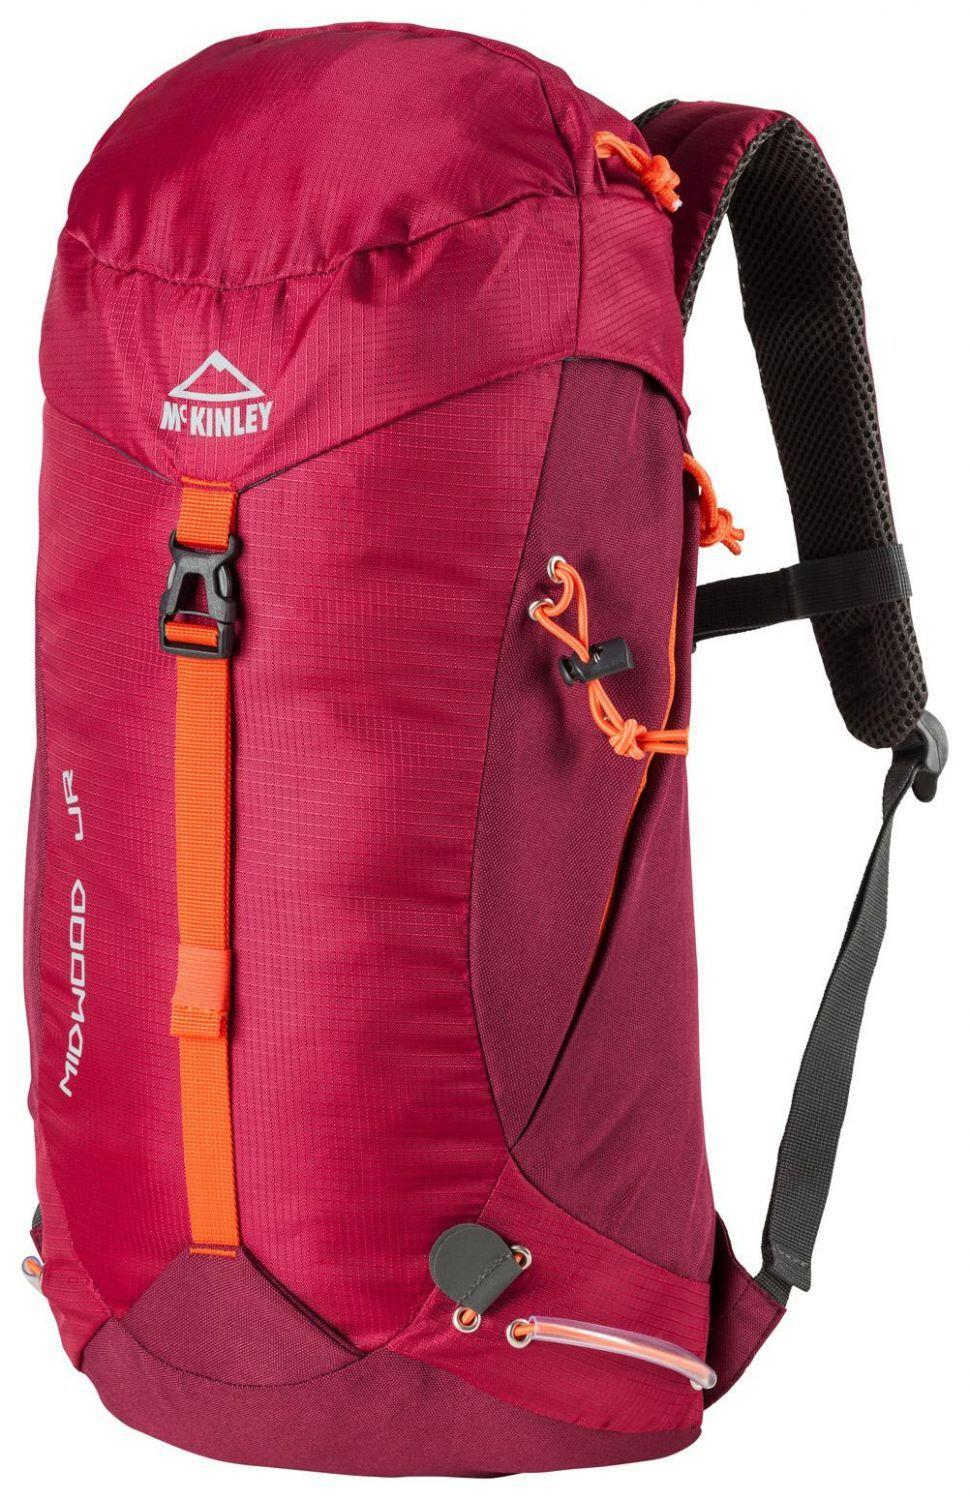 mckinley-midwood-junior-wanderrucksack-farbe-904-redwine-redwine-orange-